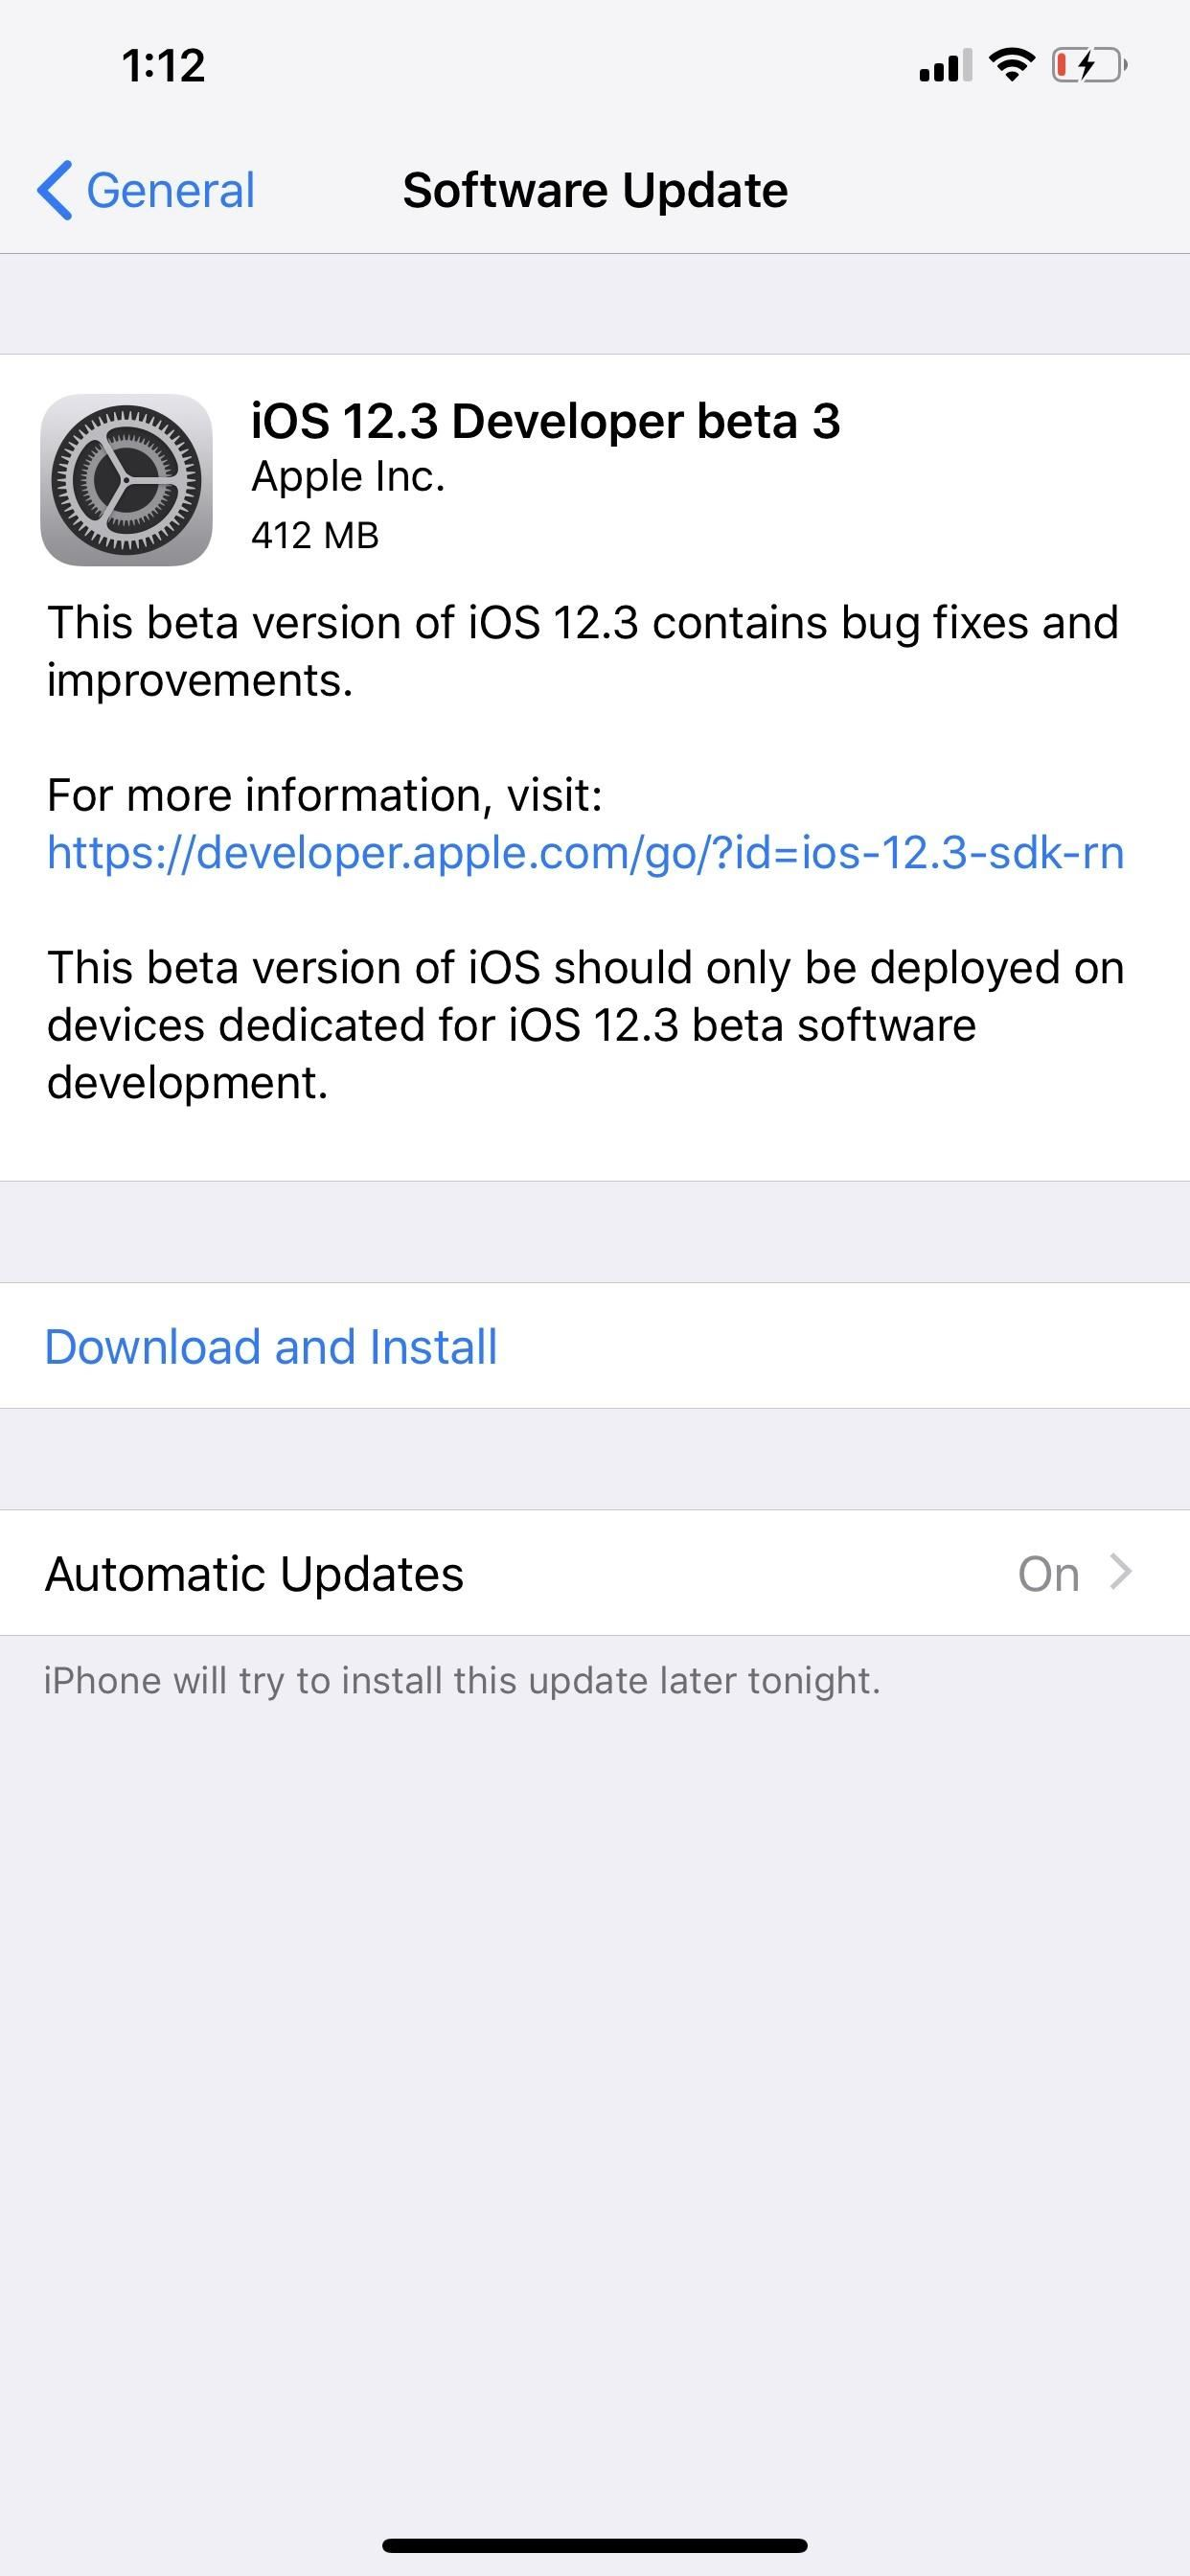 Apple Releases iOS 12.3 Developer Beta 3 for iPhone